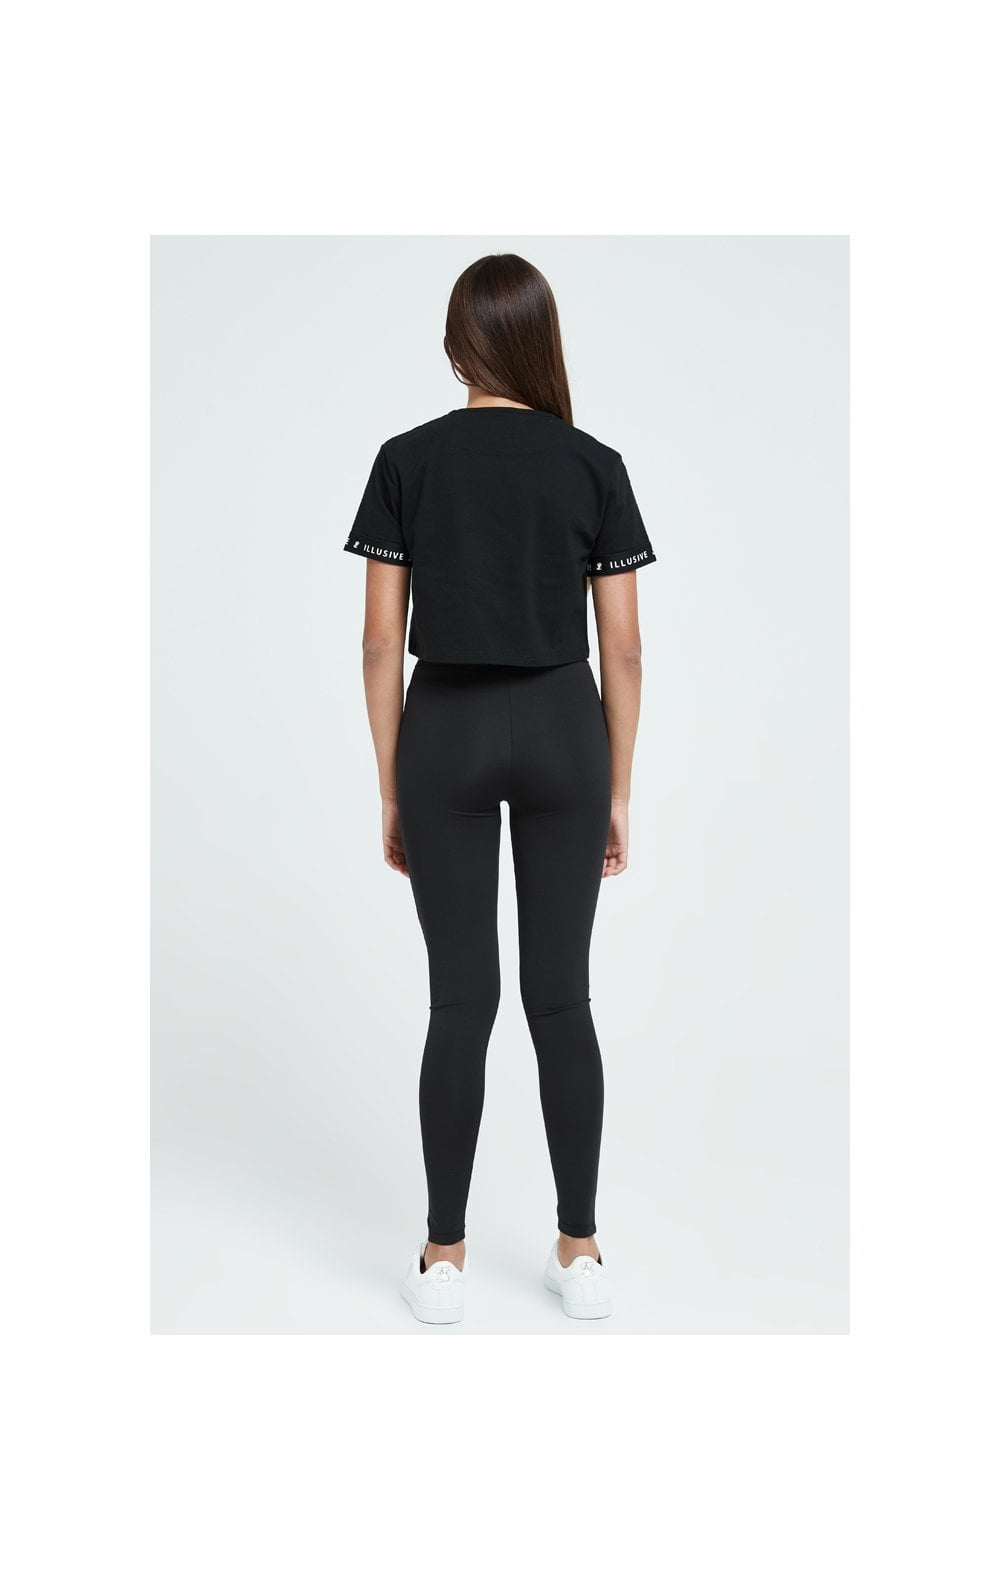 Illusive London Core Leggings - Black (6)